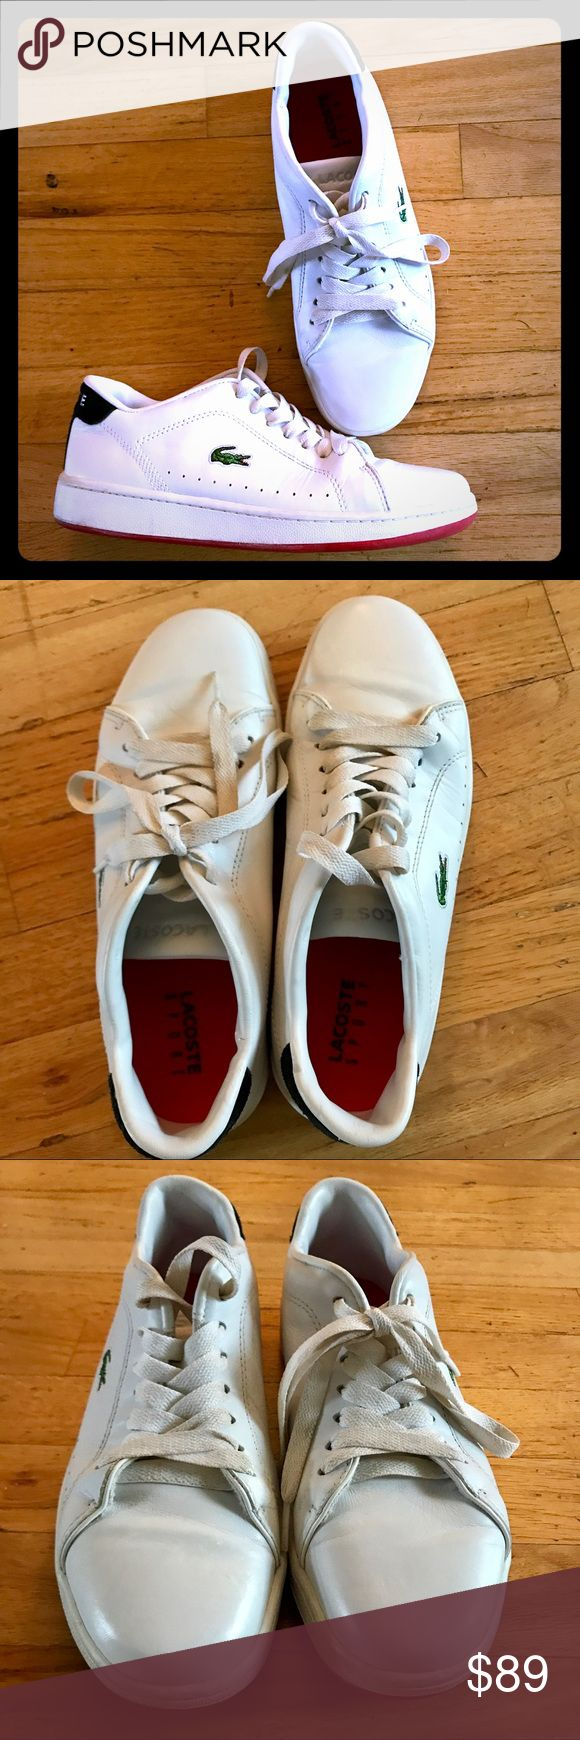 💚ON SALE! Men's Lacoste Leather Sneakers, Size 8 Beautifully cared for pair of Men's Leather Lacoste Sneakers, complete with the alligator on the side! EXCELLENT PRE-OWNED CONDITION, which is hard to do with white sneakers!! 😊😉 Get 'em before they're snatched up! These will go quickly!! Size 8. Lacoste Shoes Sneakers